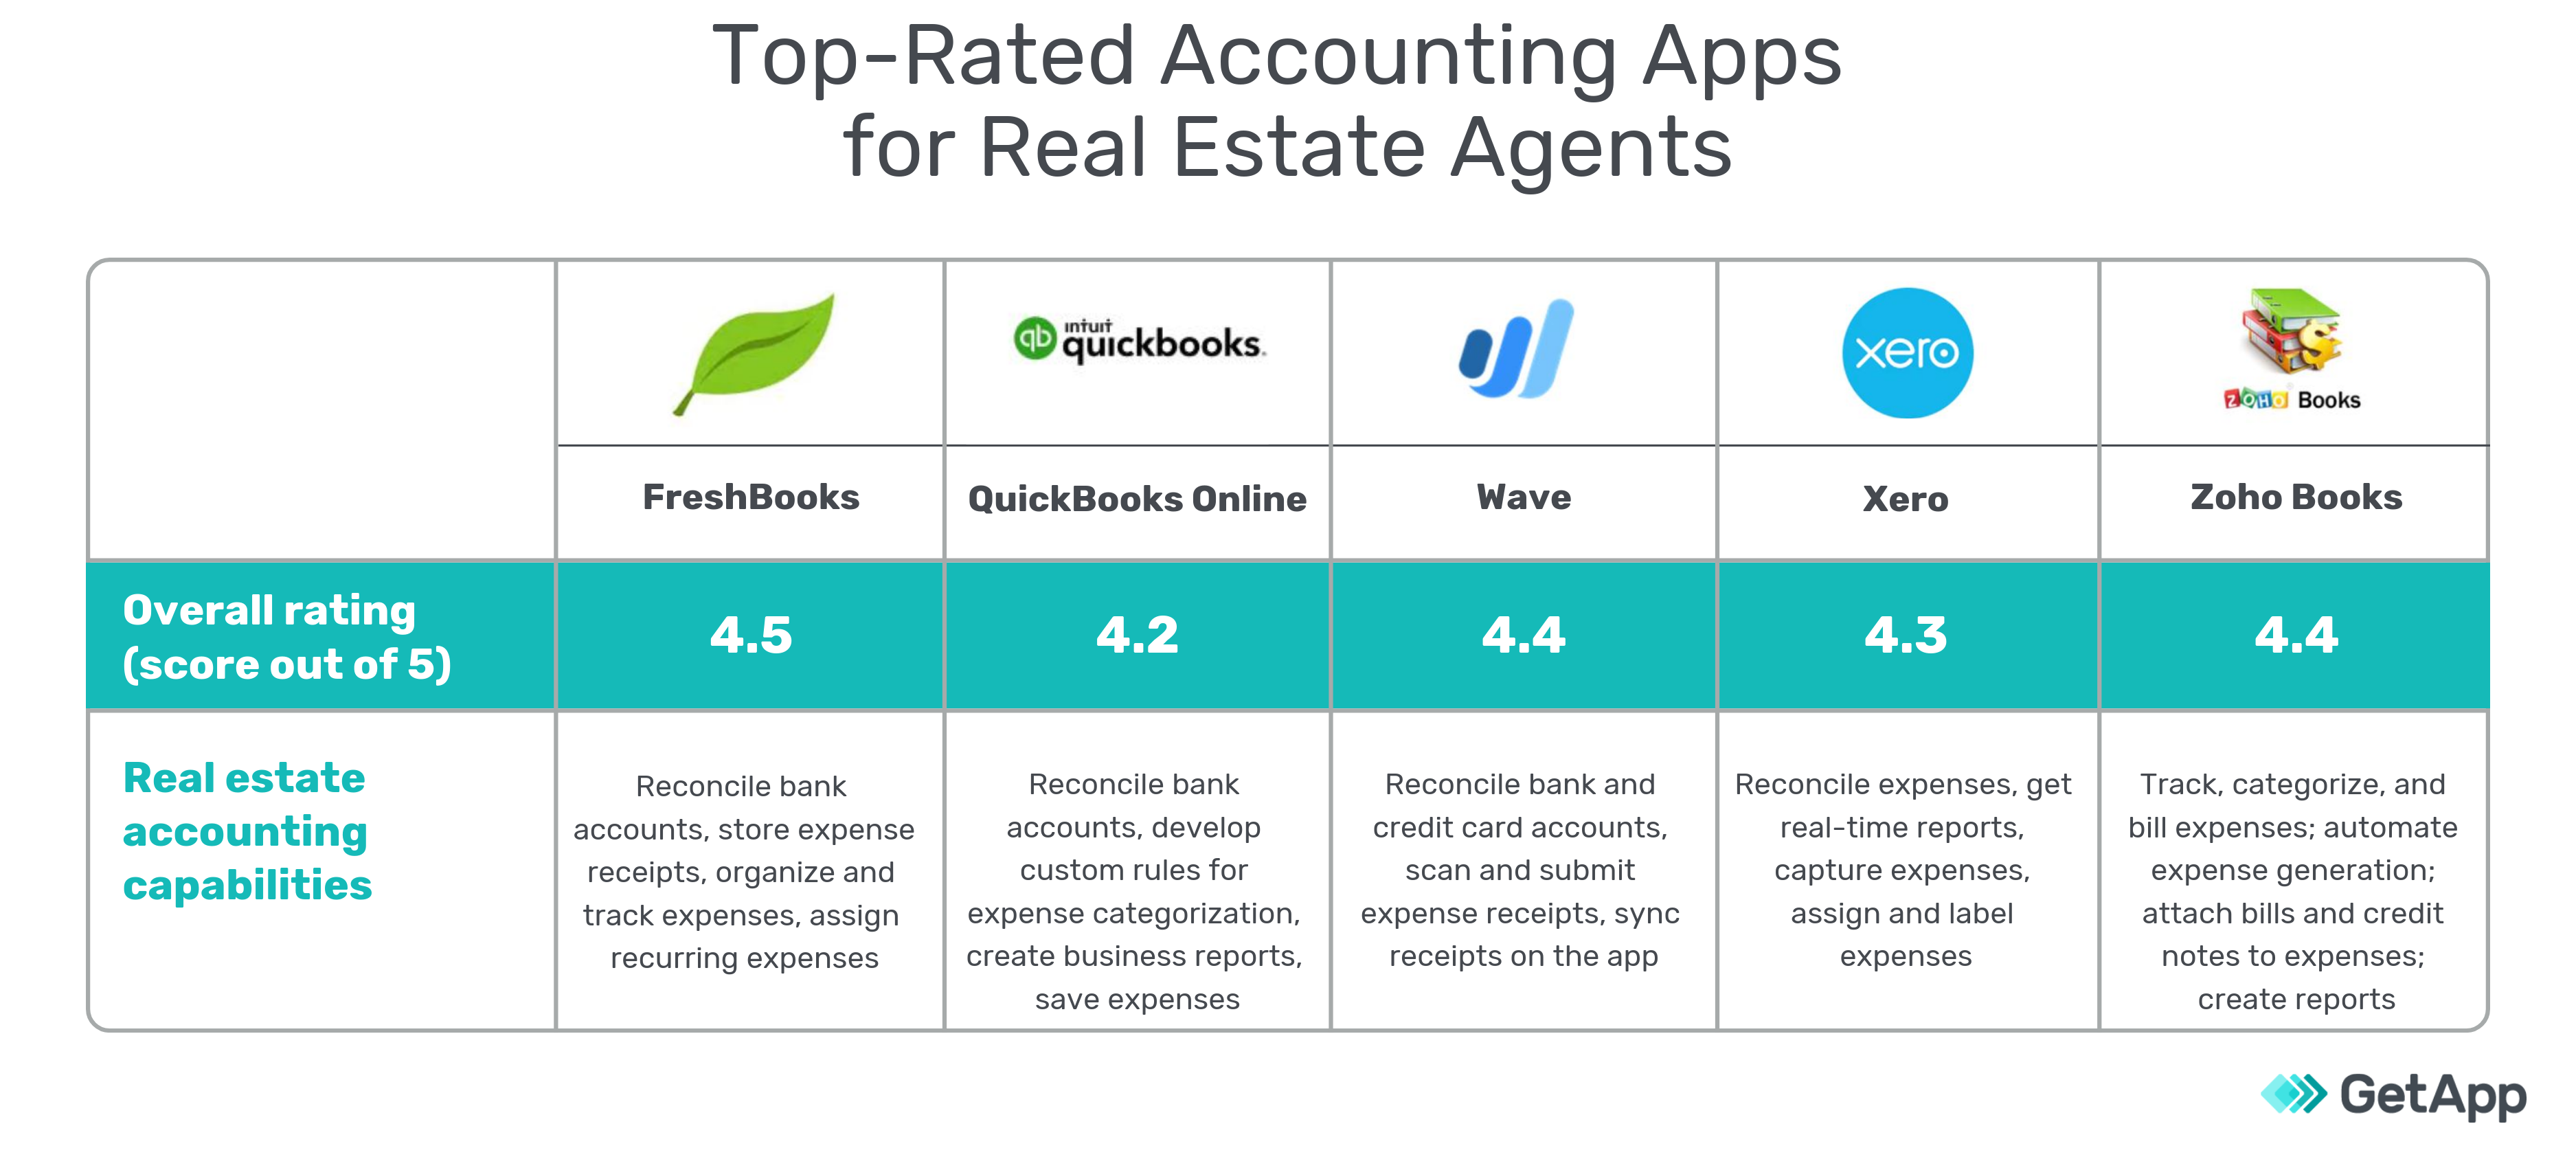 Five top-rated accounting apps for real estate agents comparison chart